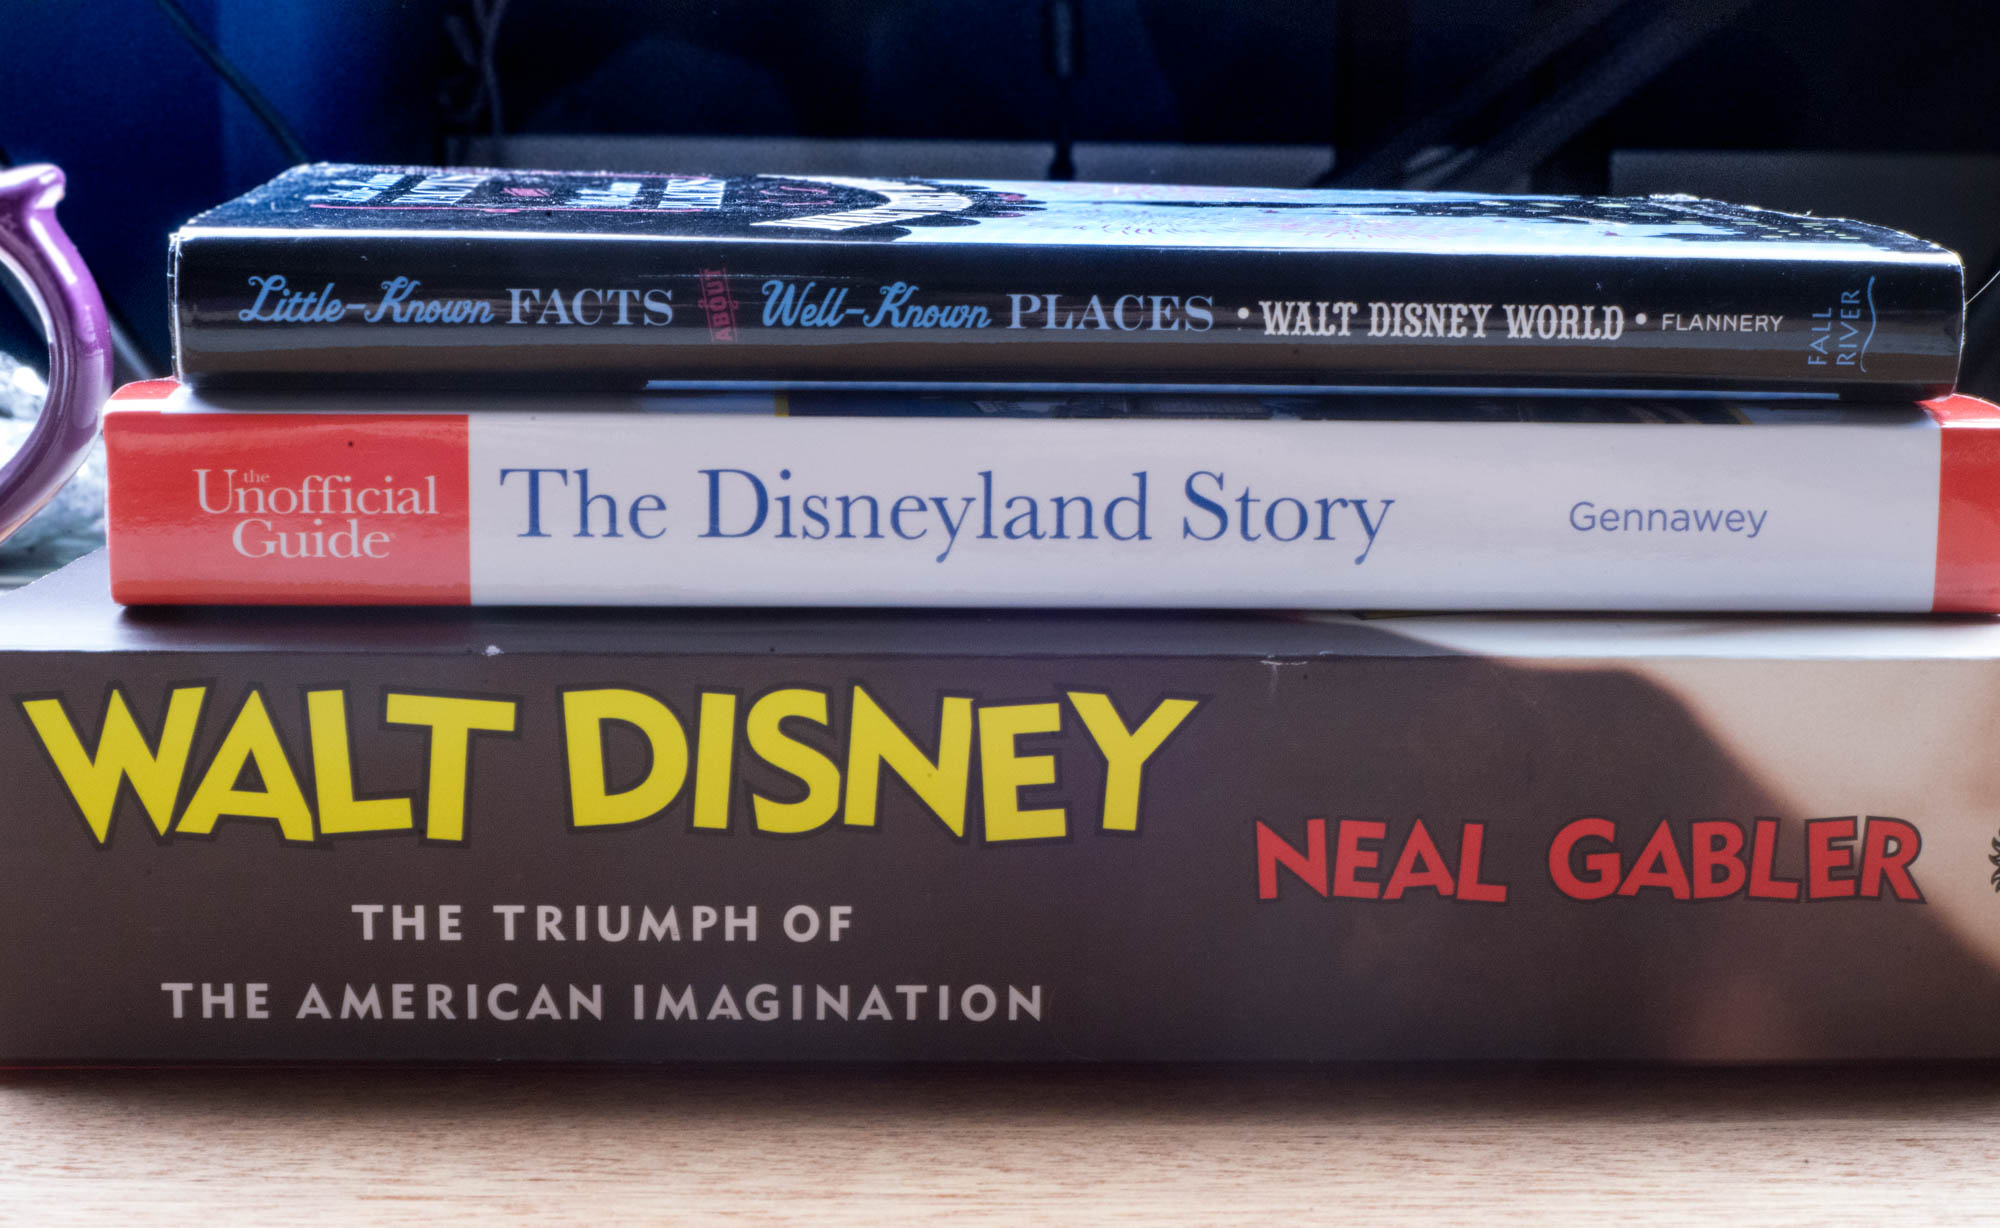 Stack of Disney Historical Books -The Disneyland Story and Triumph of The American Imagination